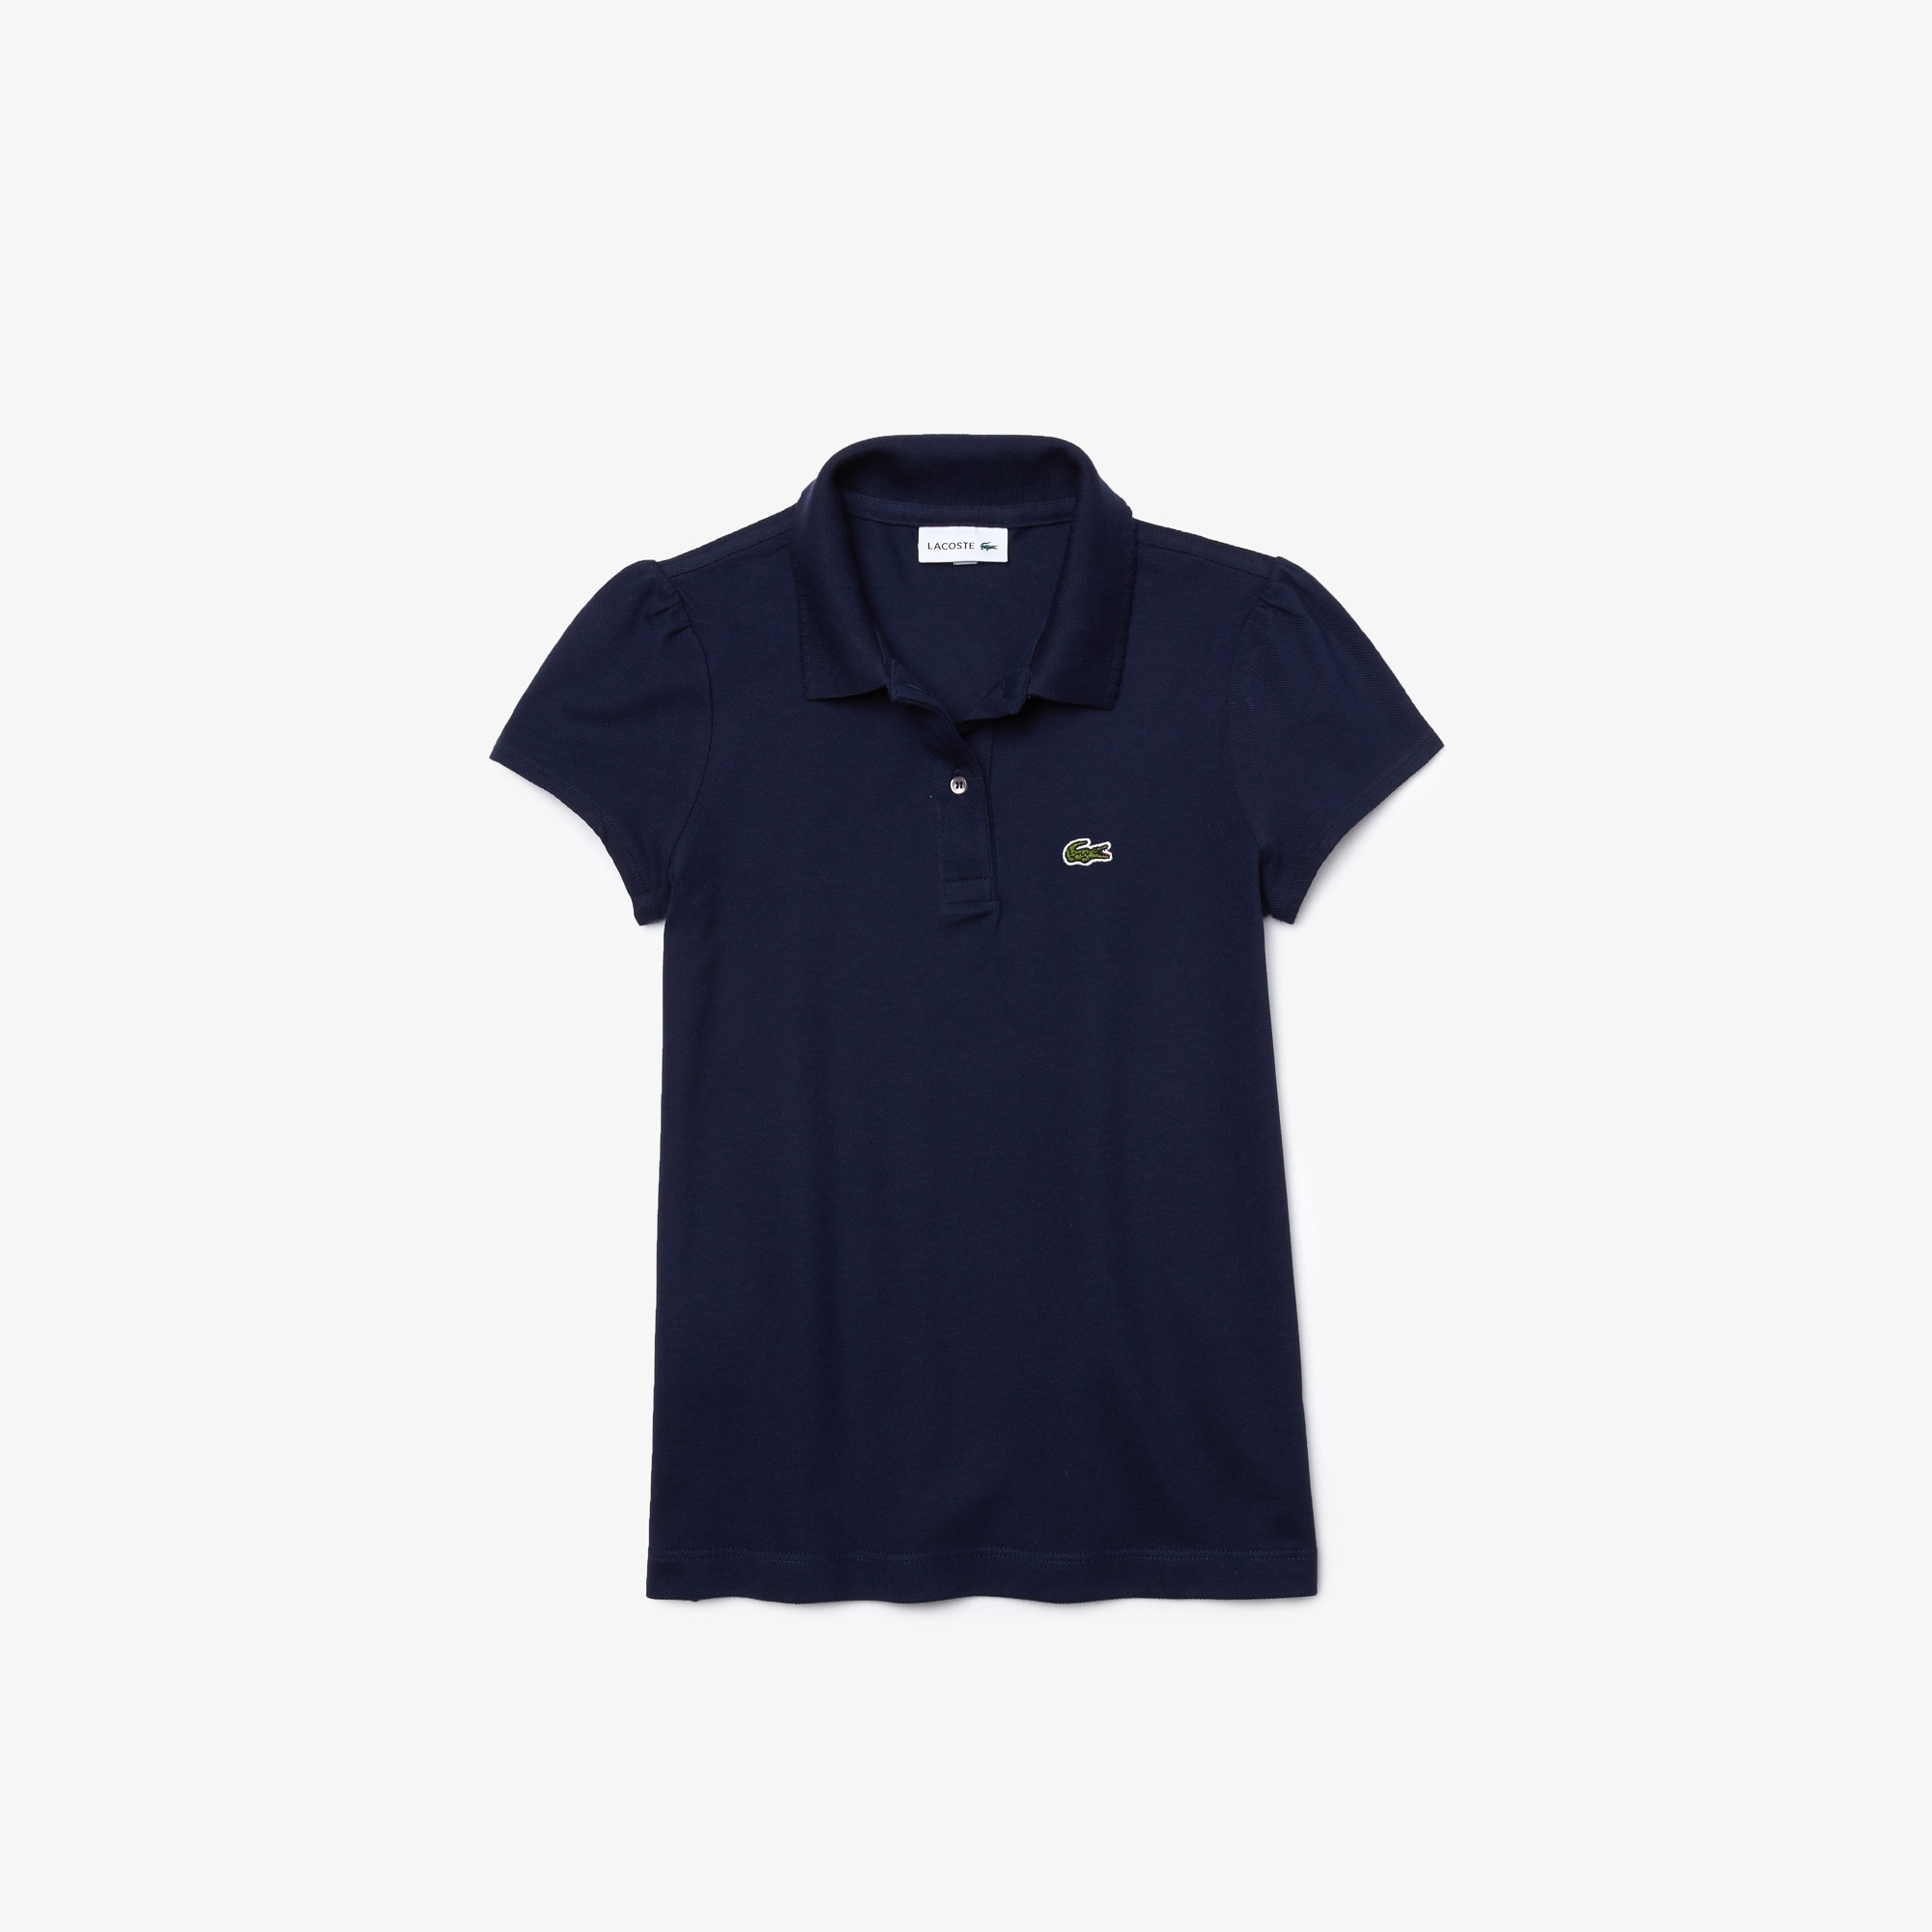 ddb8c405c1 Tous les polos | Collection Polo | LACOSTE